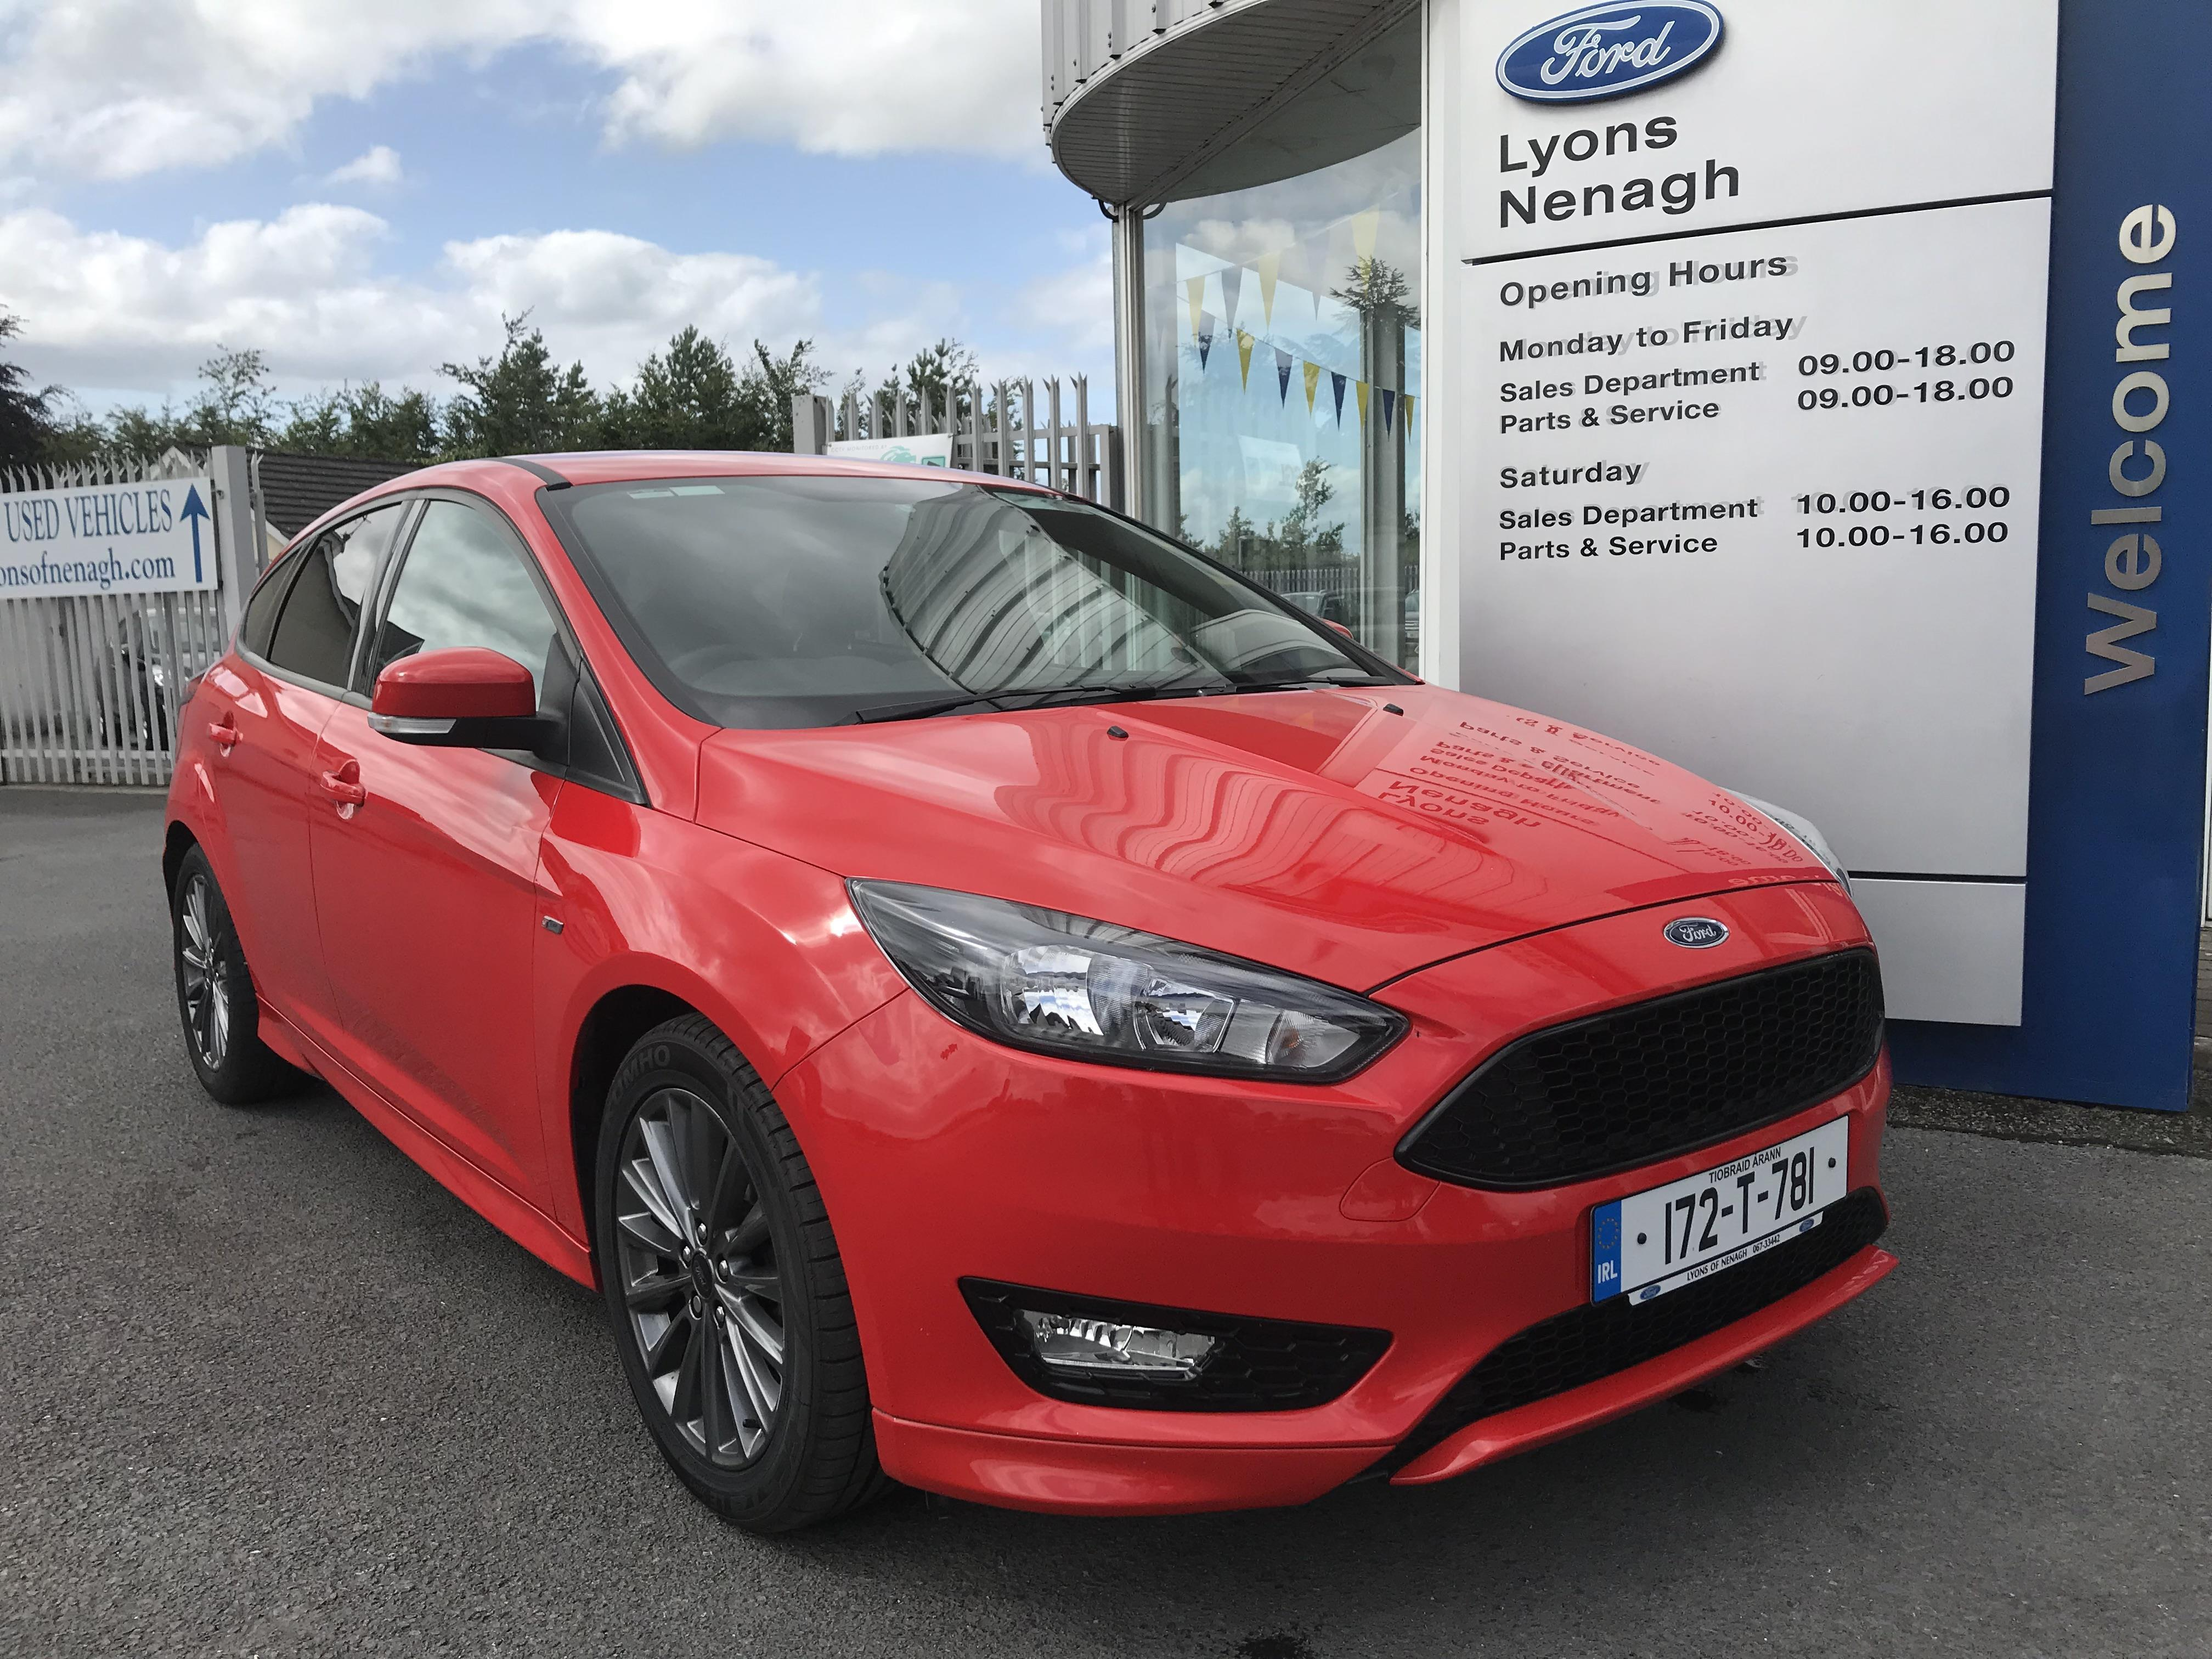 2017 Ford Focus ST-Line, Lyons of Nenagh